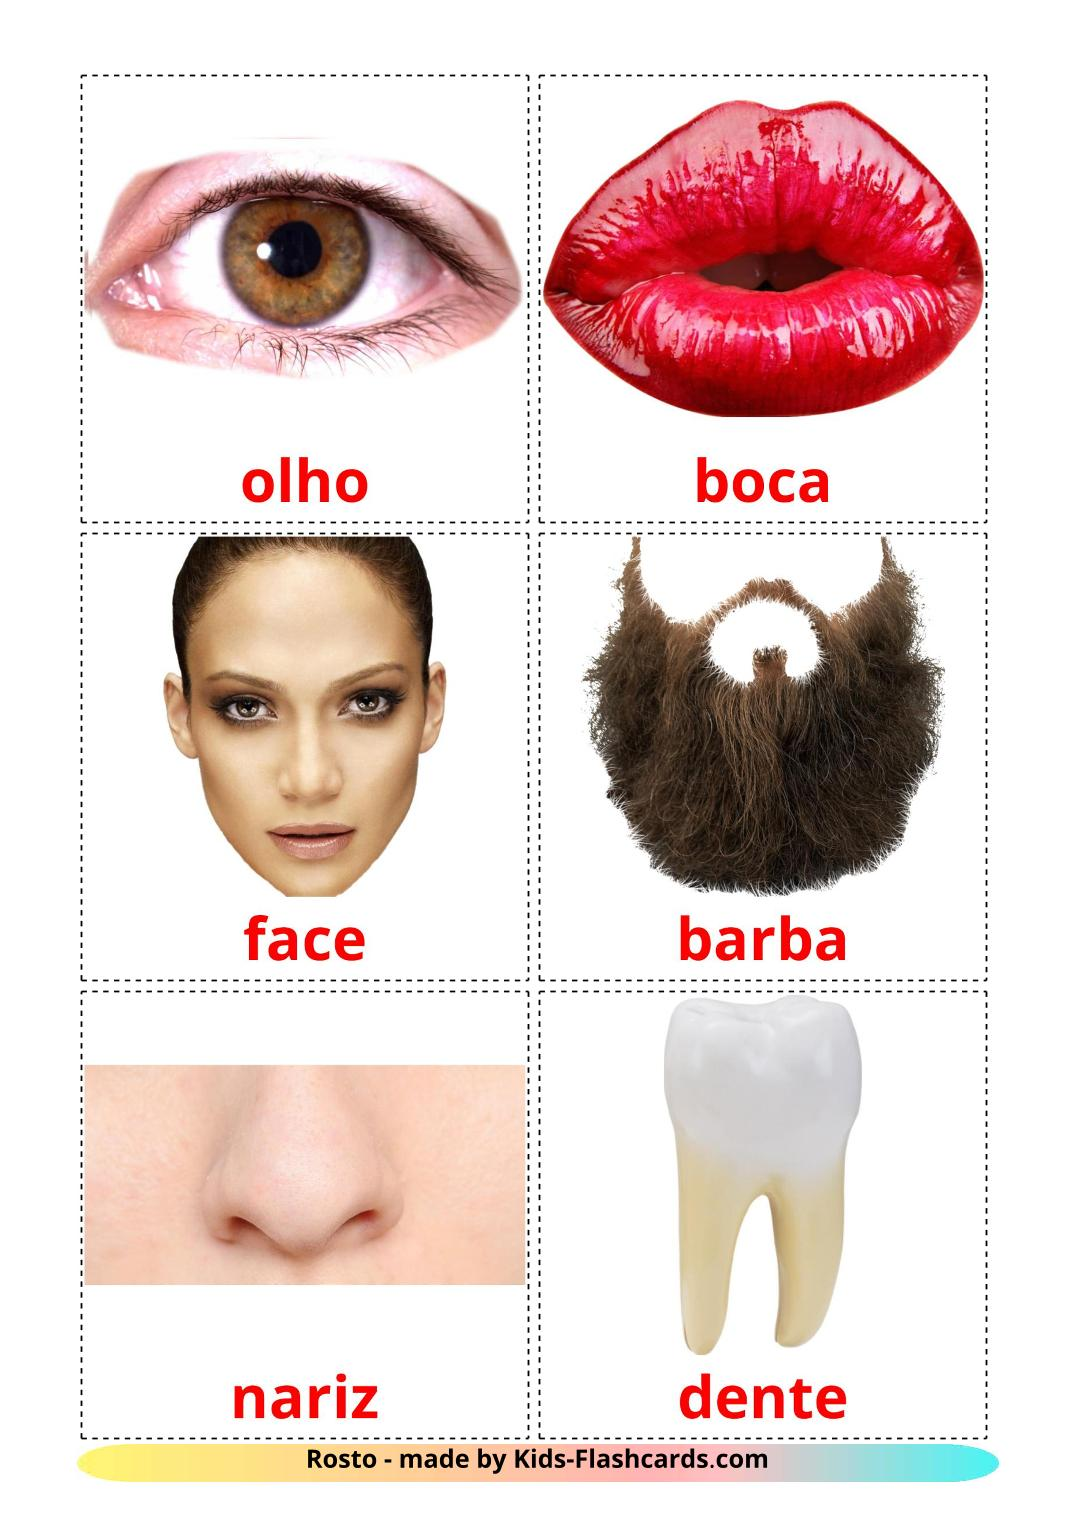 Face - 20 Free Printable portuguese Flashcards